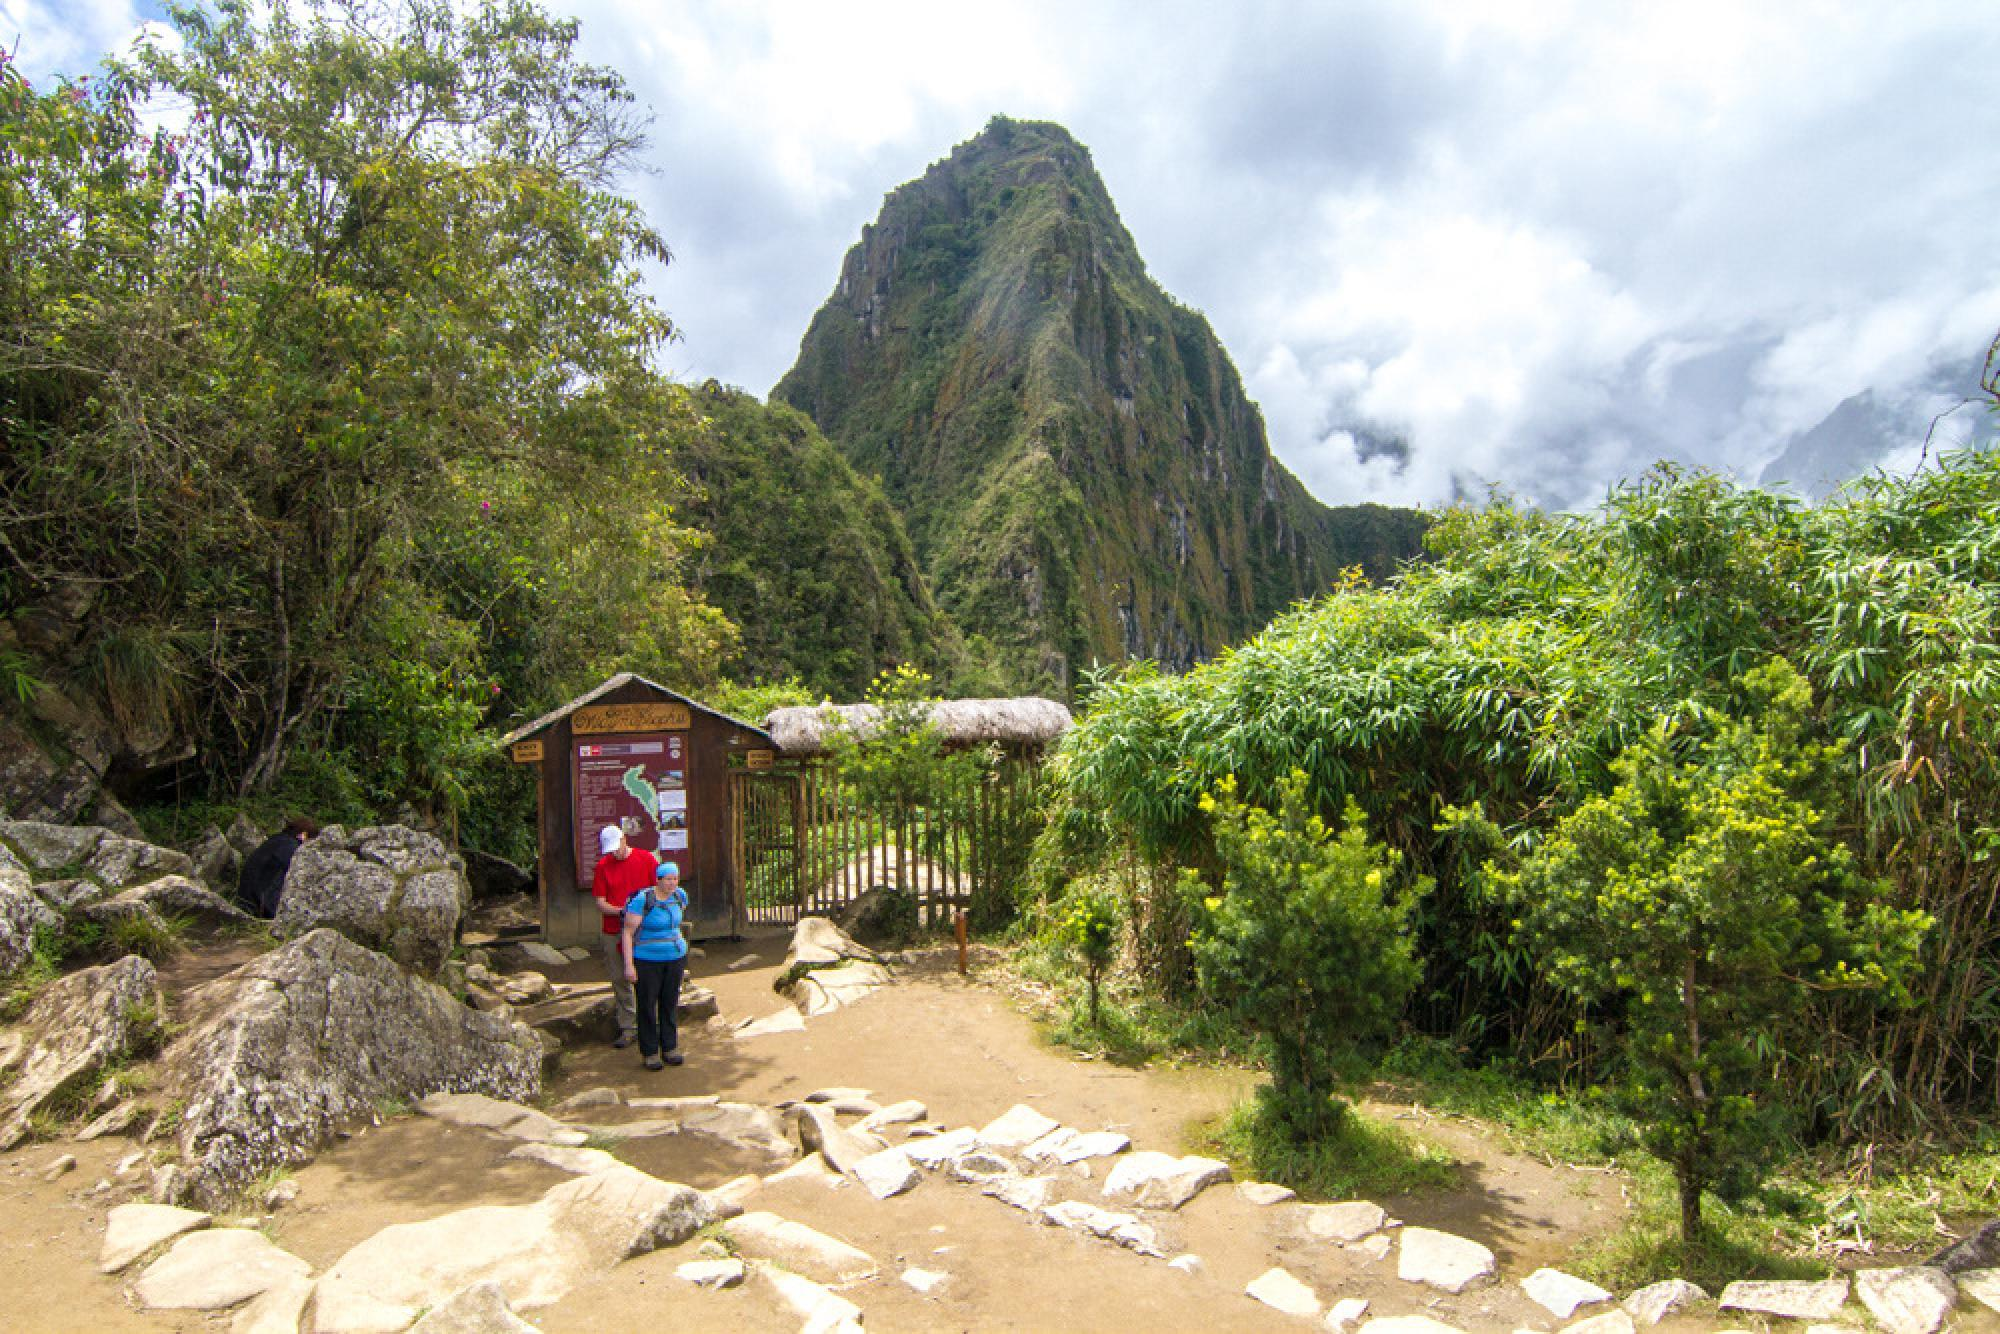 Machu Picchu Mountain Hiking Tour